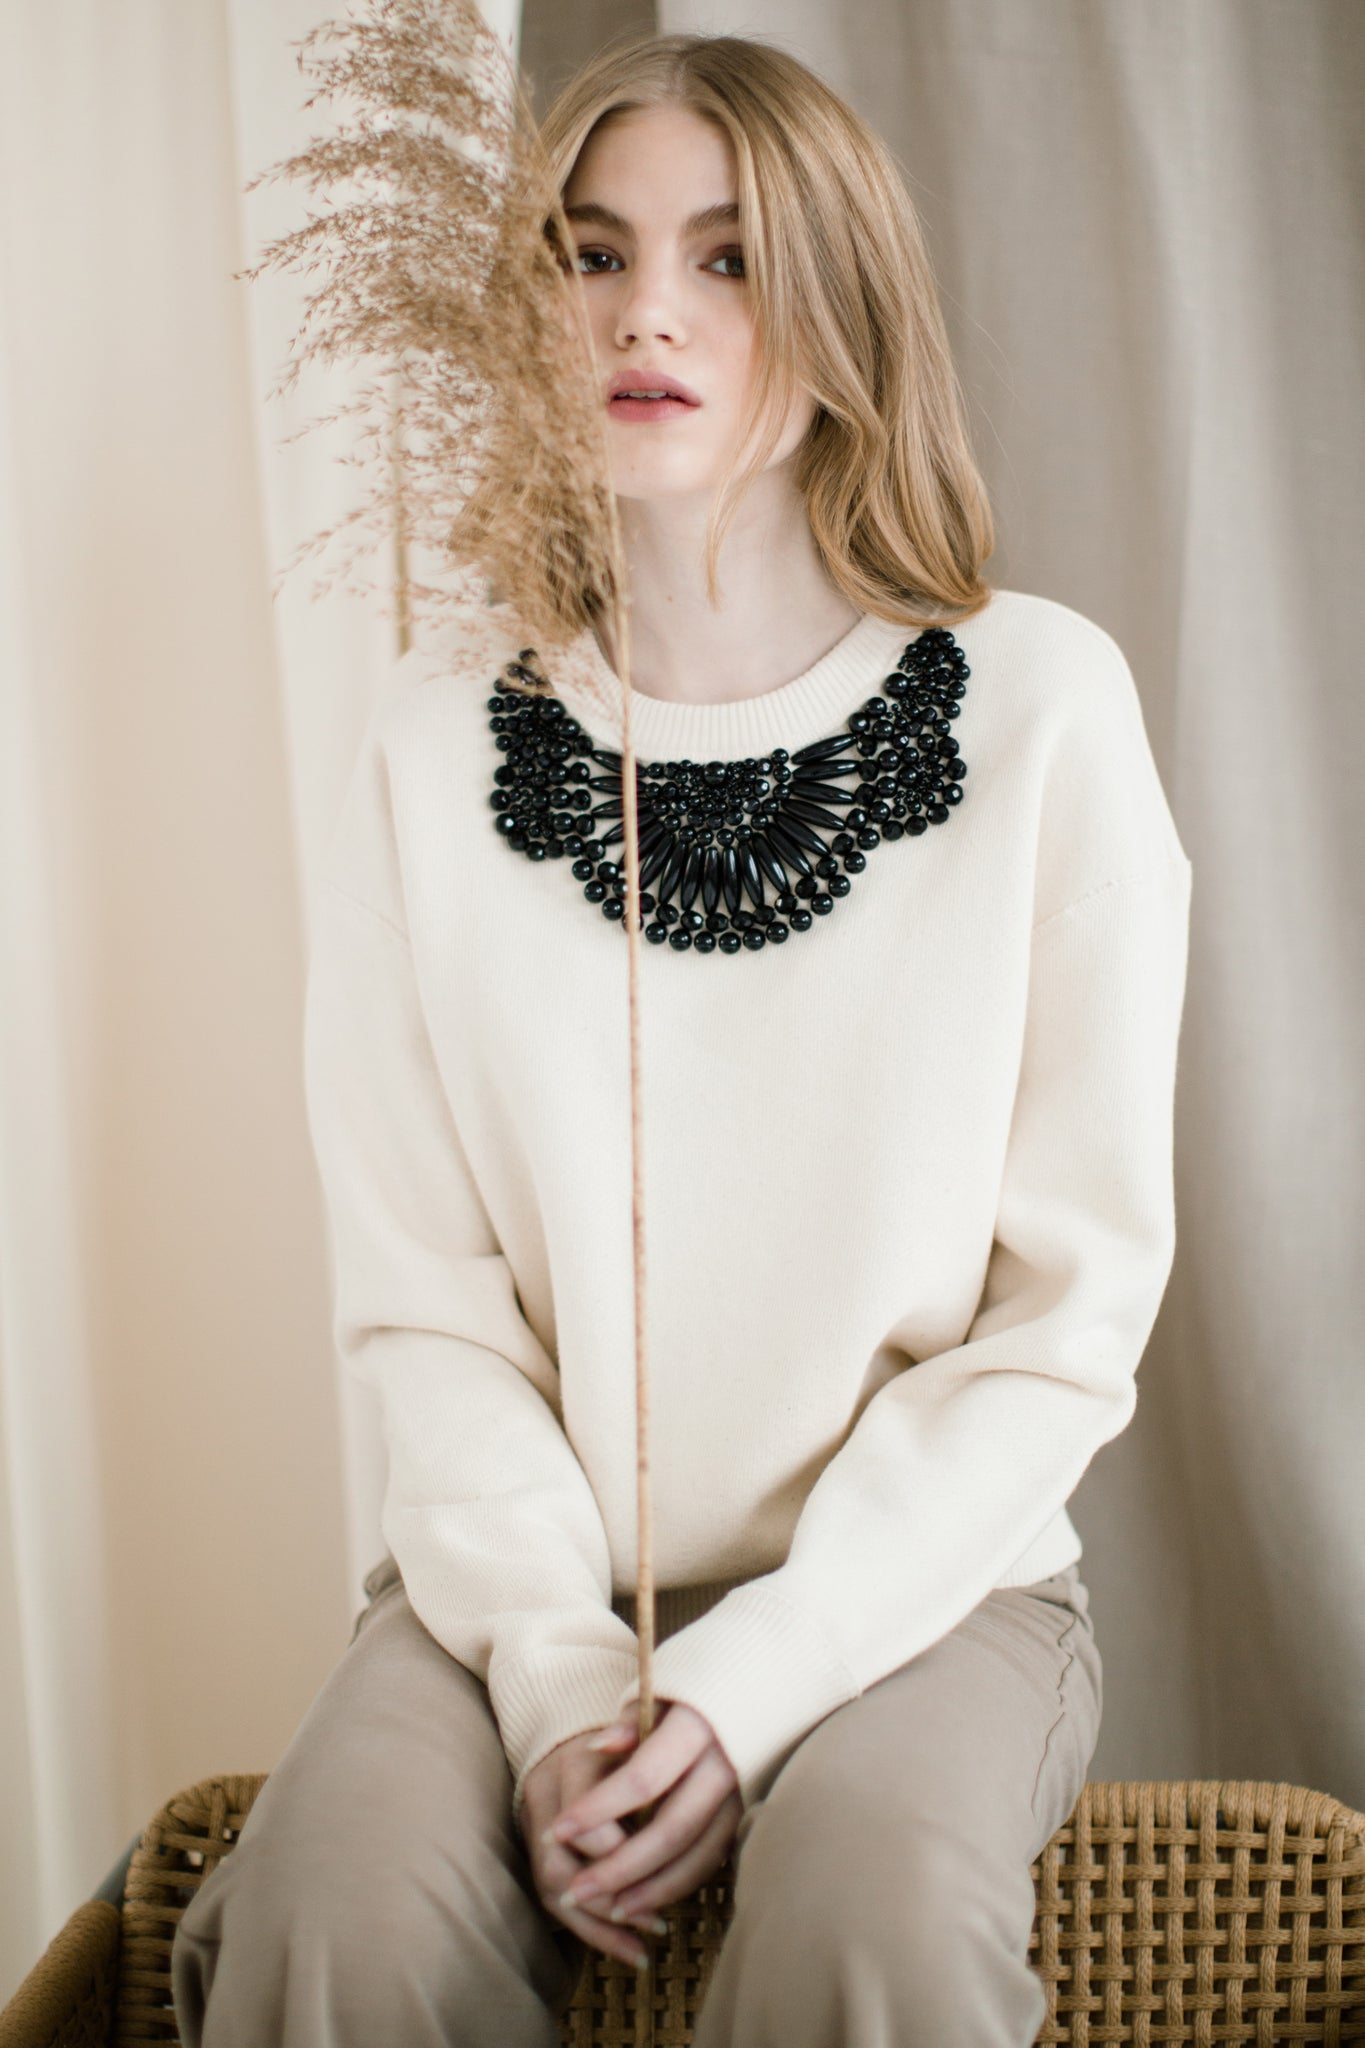 Porcelain sweatshirt with black beaded ornament | Size S